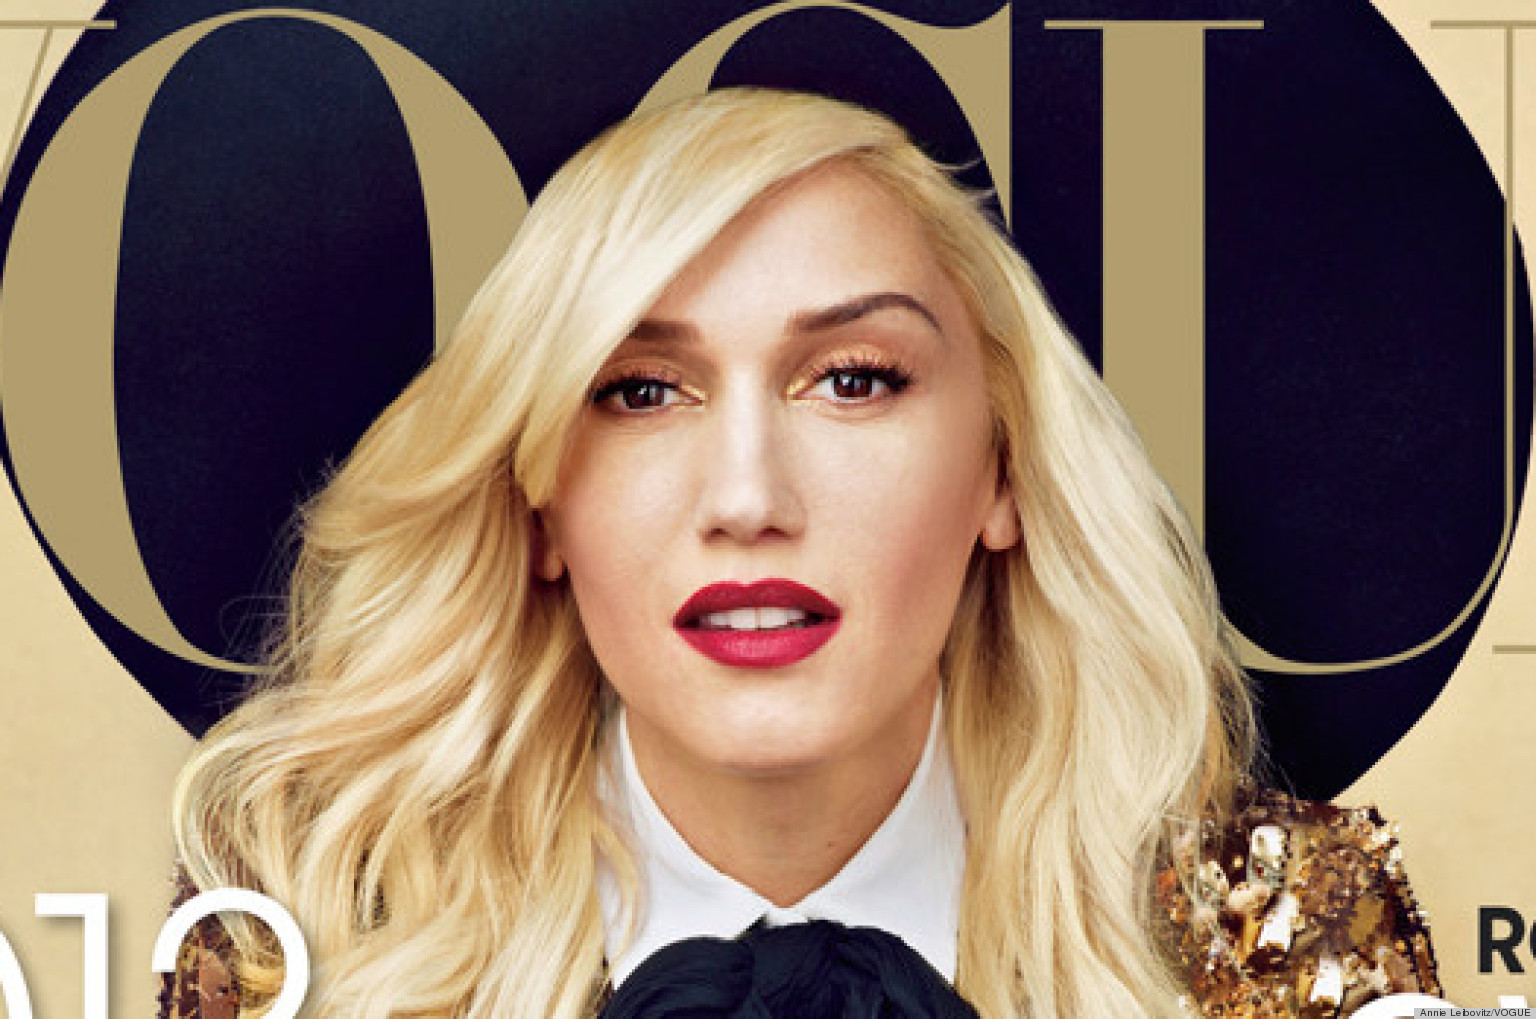 Gwen stefani vogue cover for january 2013 confirms singers comeback gwen stefani vogue cover for january 2013 confirms singers comeback photos huffpost sciox Gallery